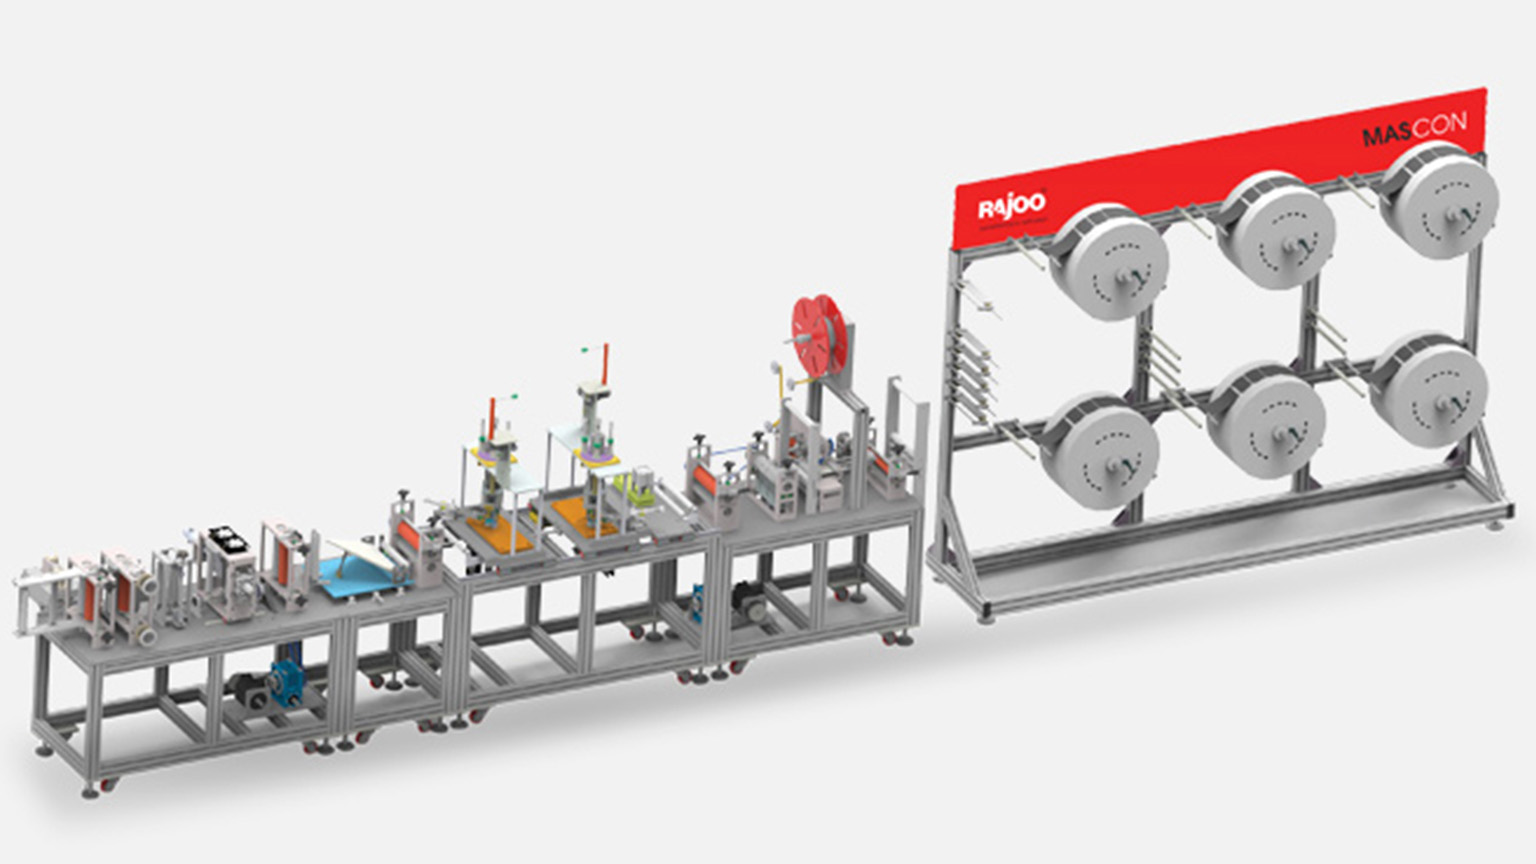 Rajoo Engineers Limited Unveils India's First Integrated, Yet Modular, Non-Woven Fabric And Automatic N95 Mask Making Lines  #IndiaFightsCorona #Coronavirus #RajooEngineers #Rajkot #PlasticMachinery #Machines #PlasticIndustry